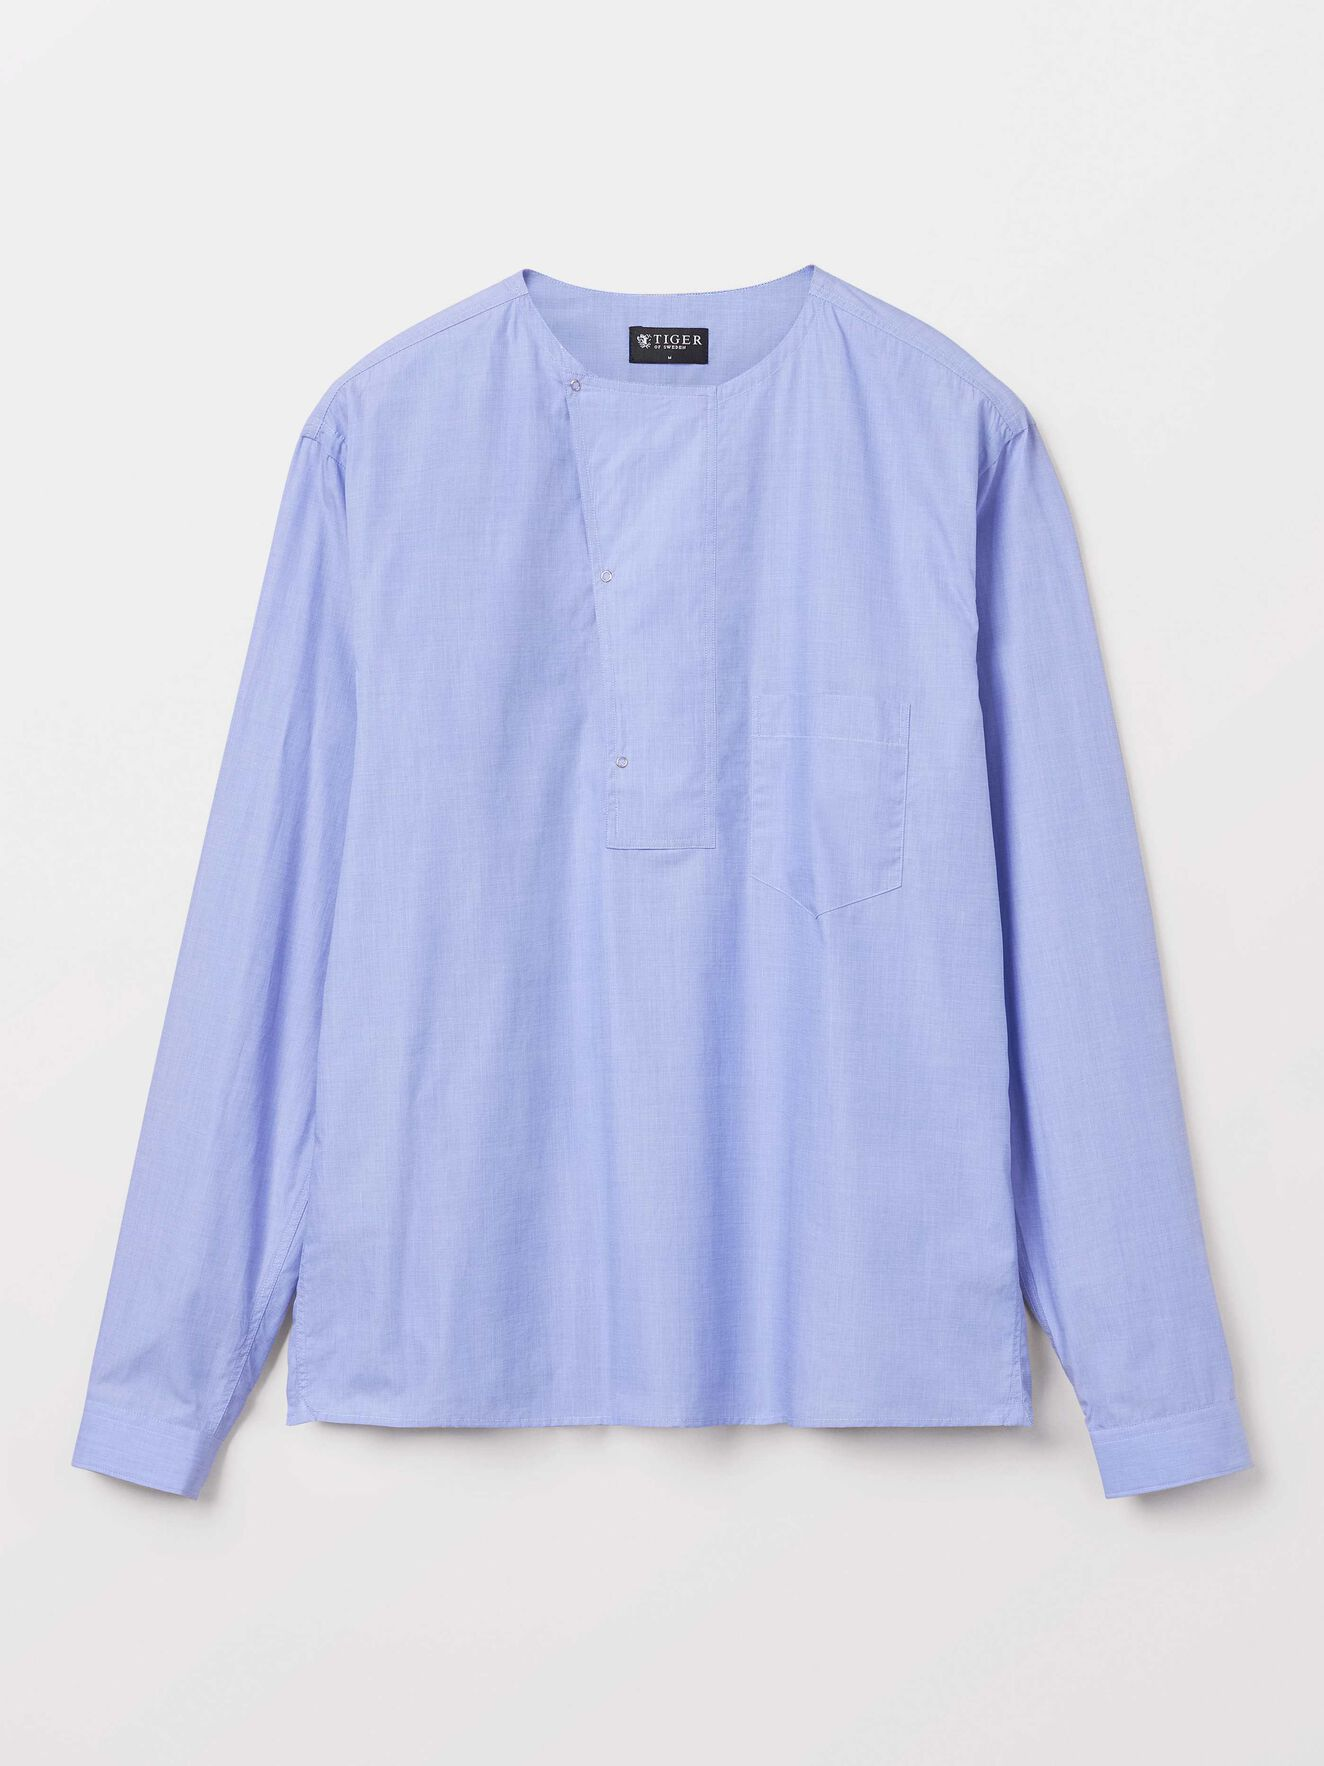 Fagen Shirt in Blue from Tiger of Sweden